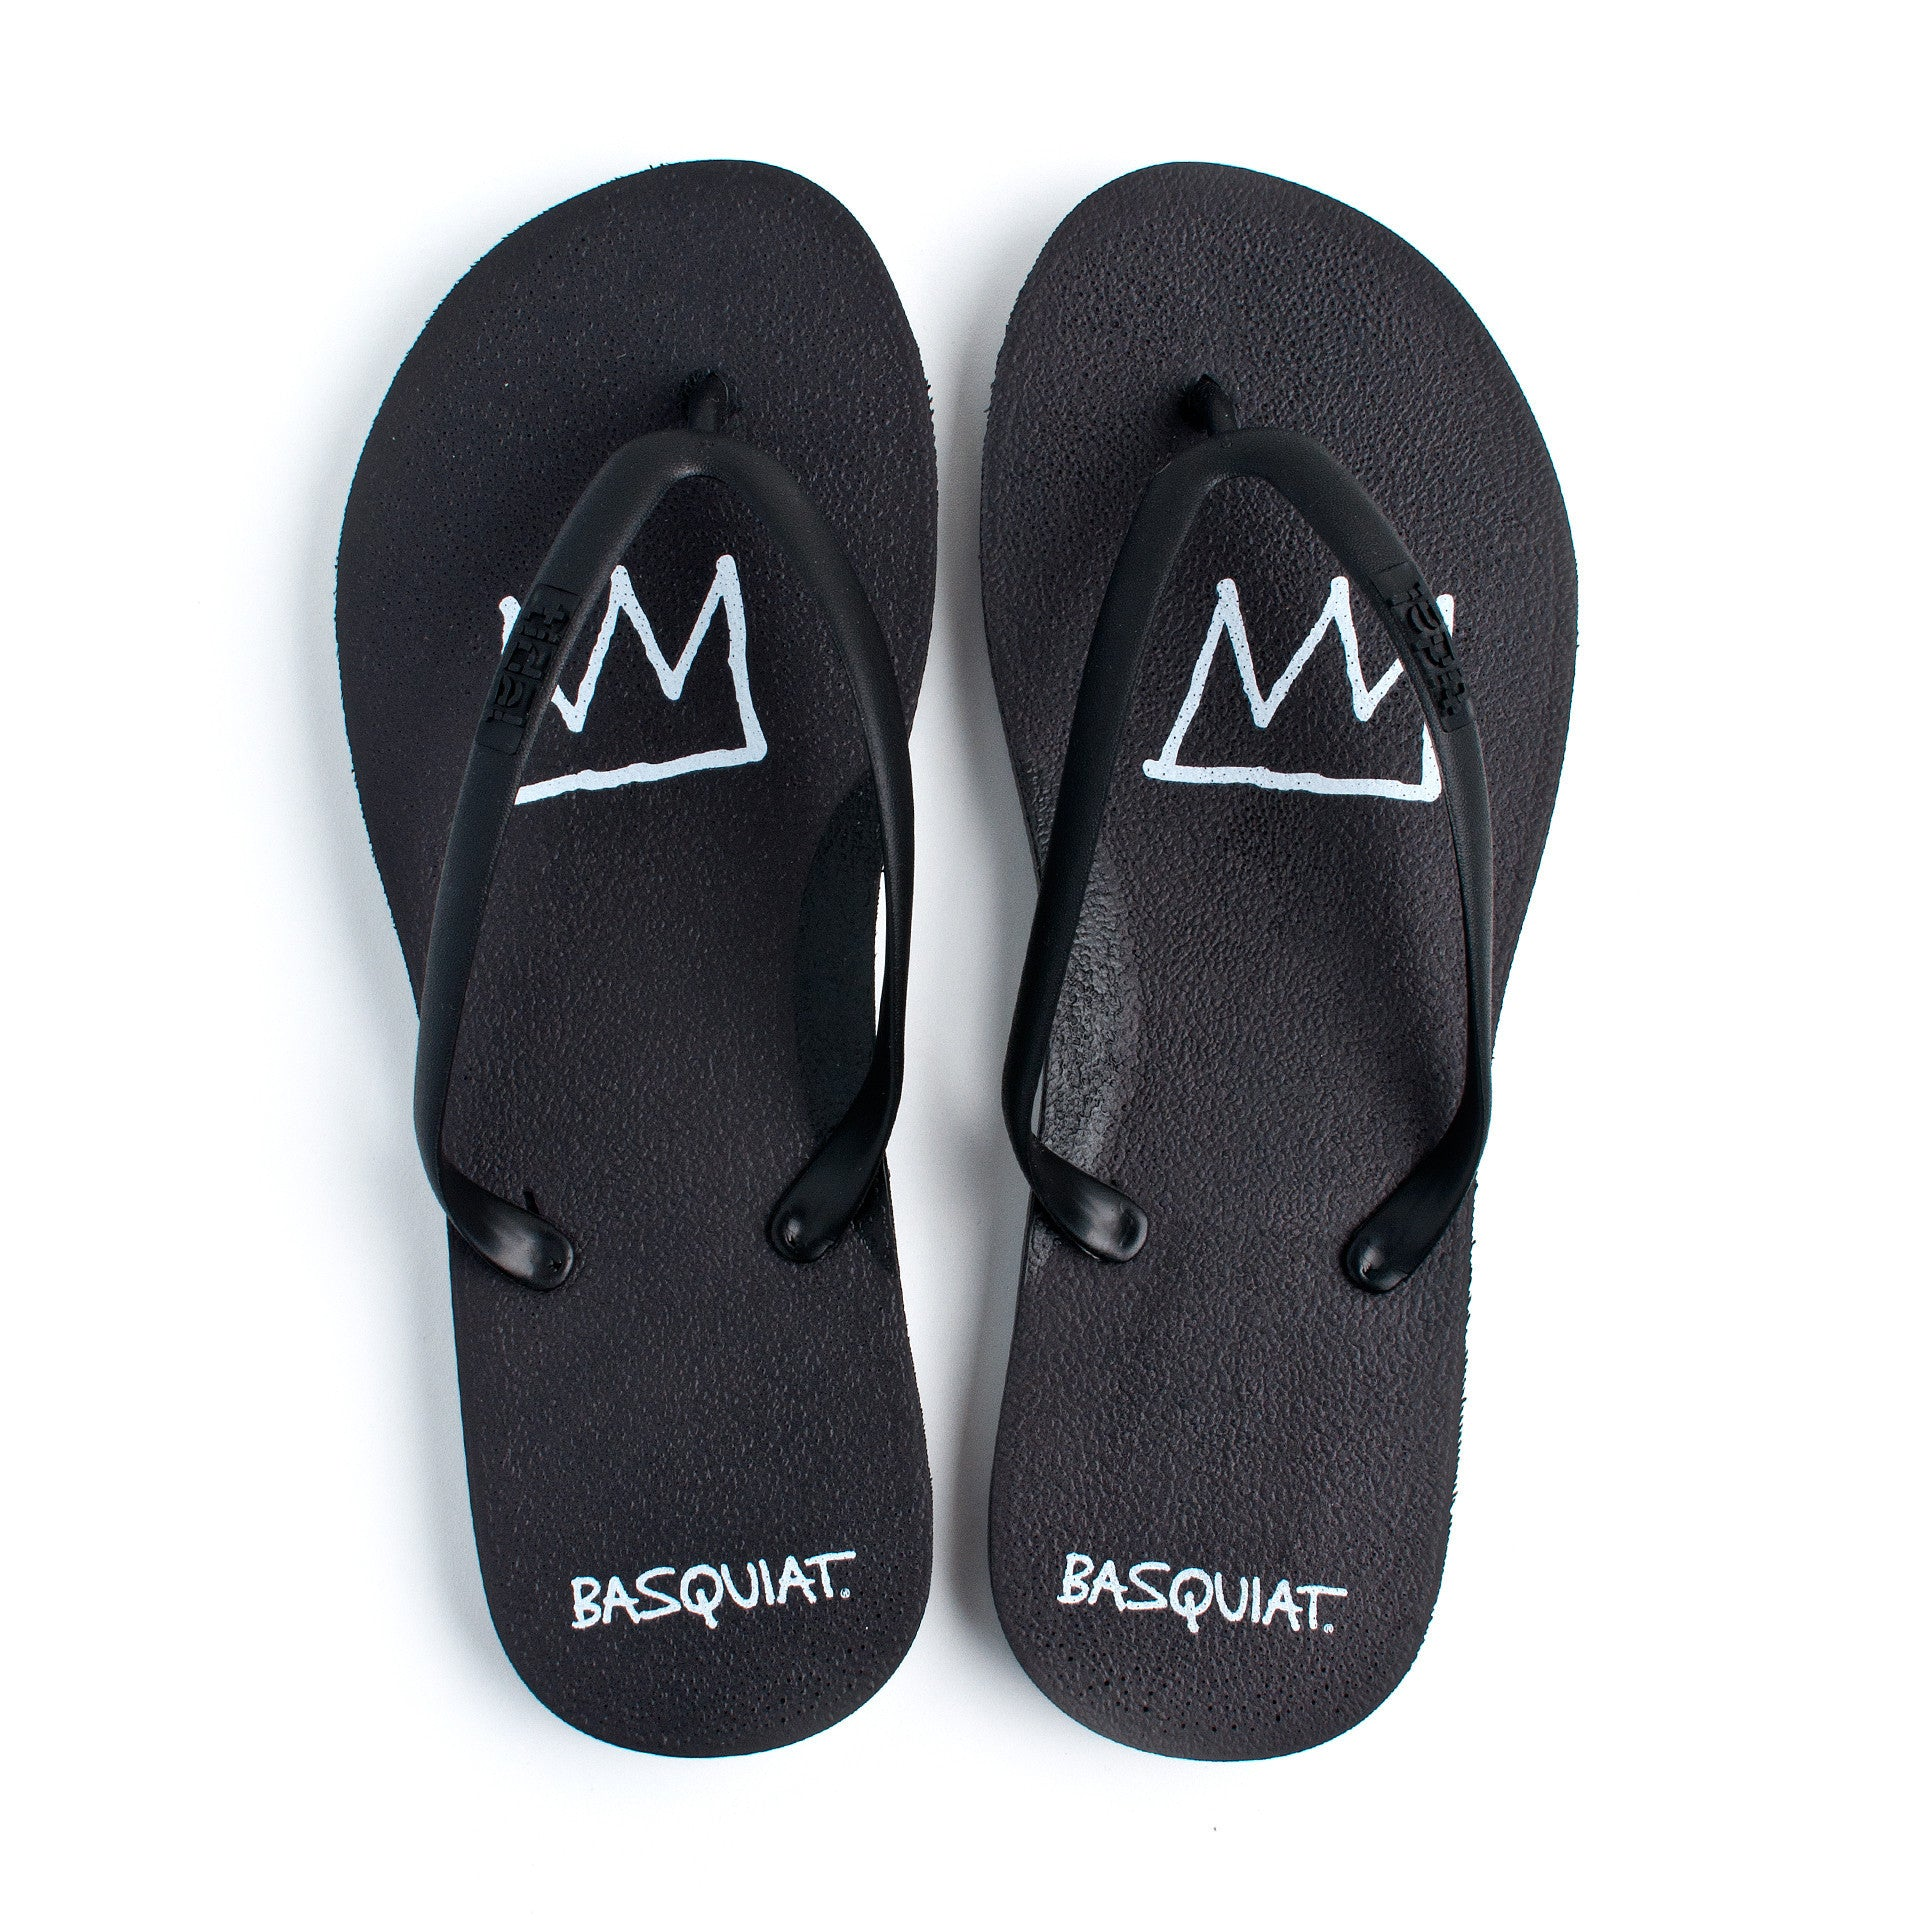 177e7db0a72 Tidal - Jean-Michel Basquiat Crown Women s Flip Flops